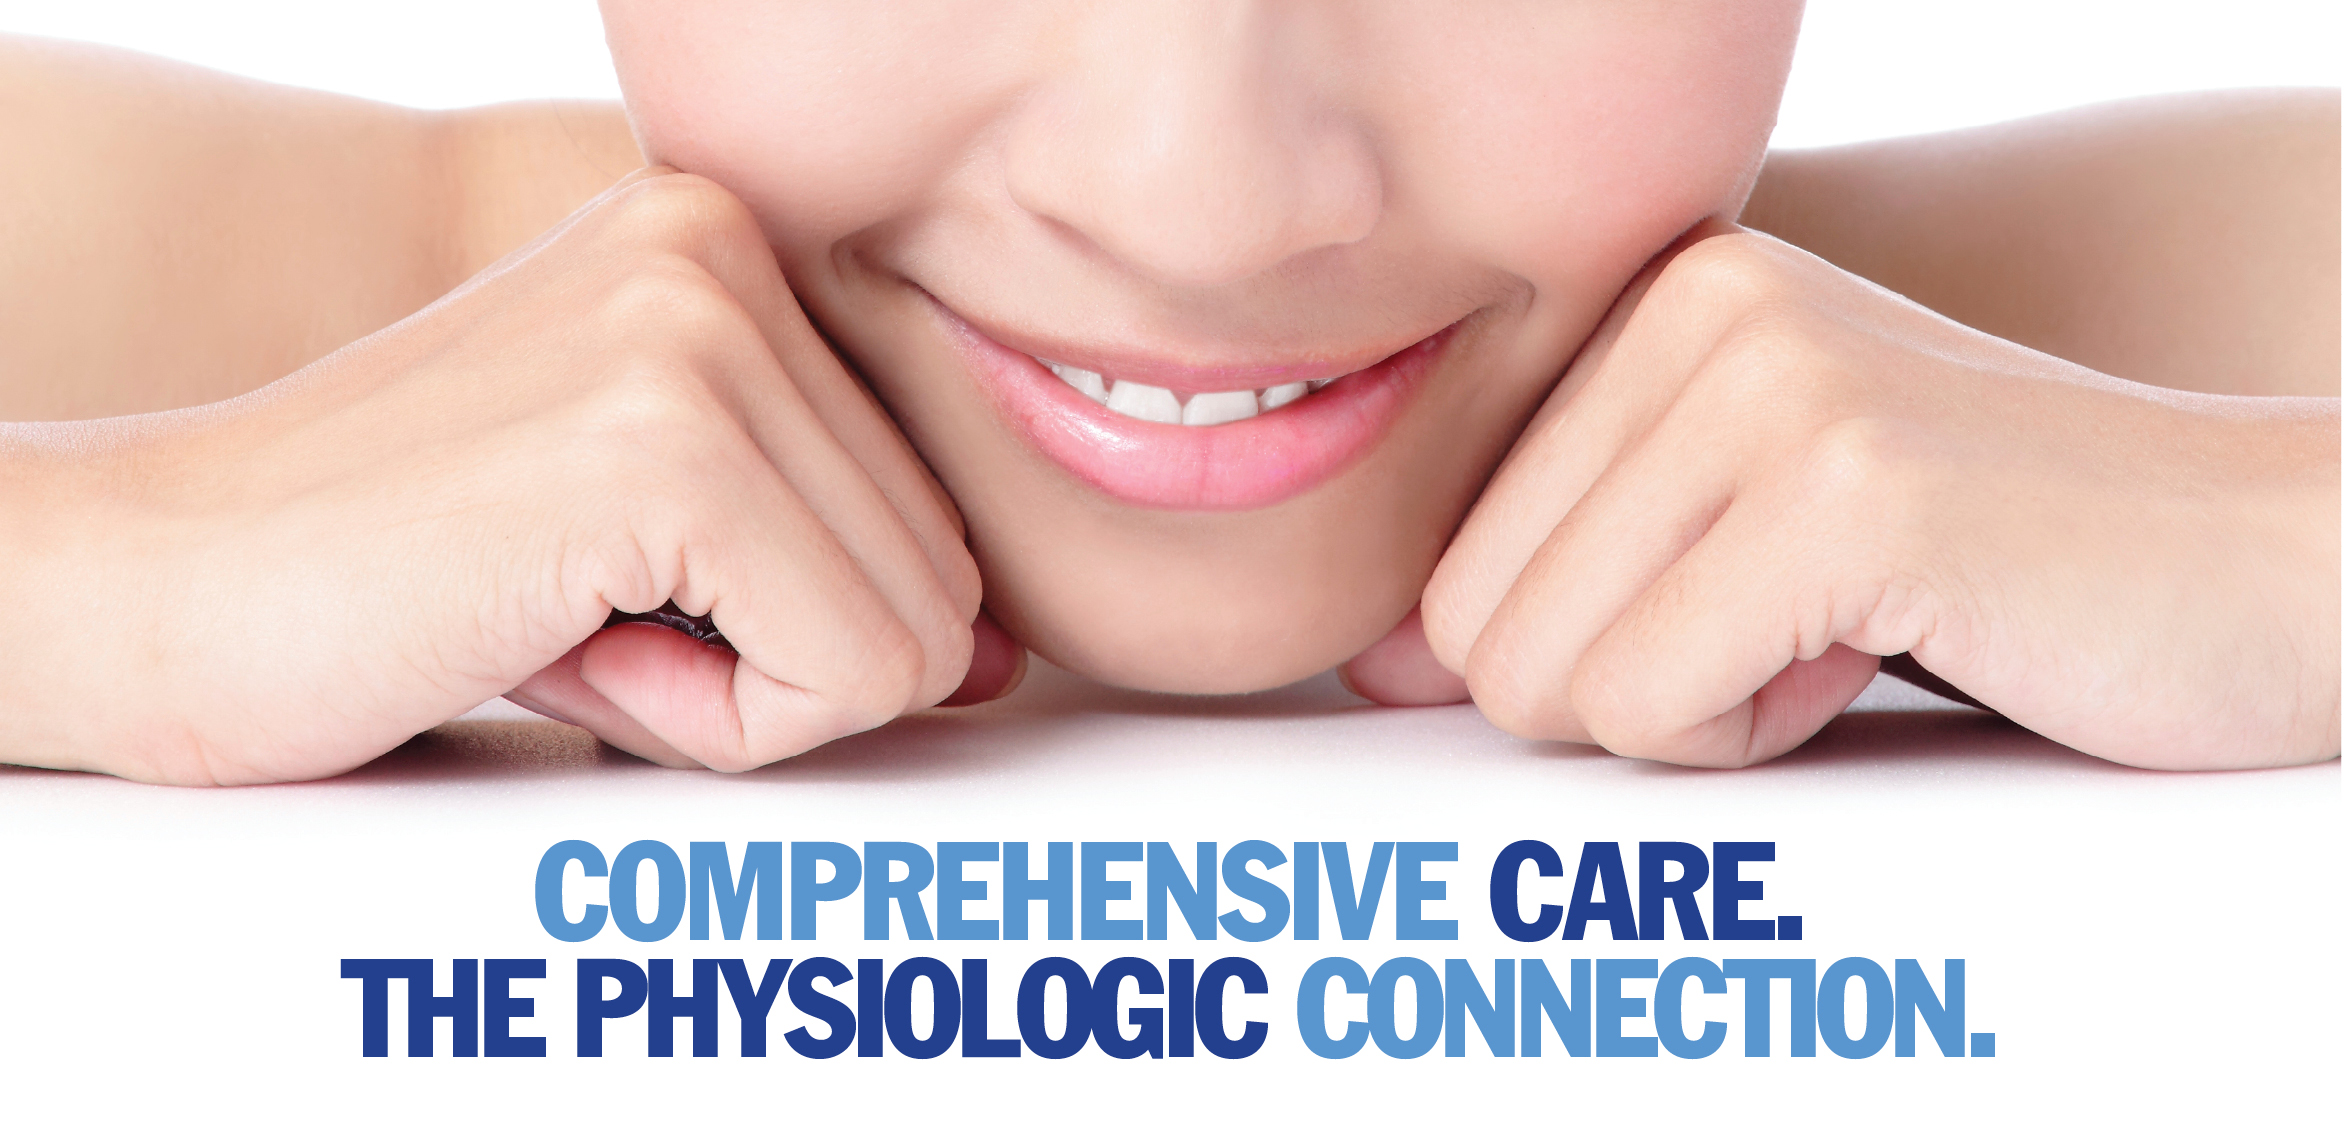 Comprehensive care